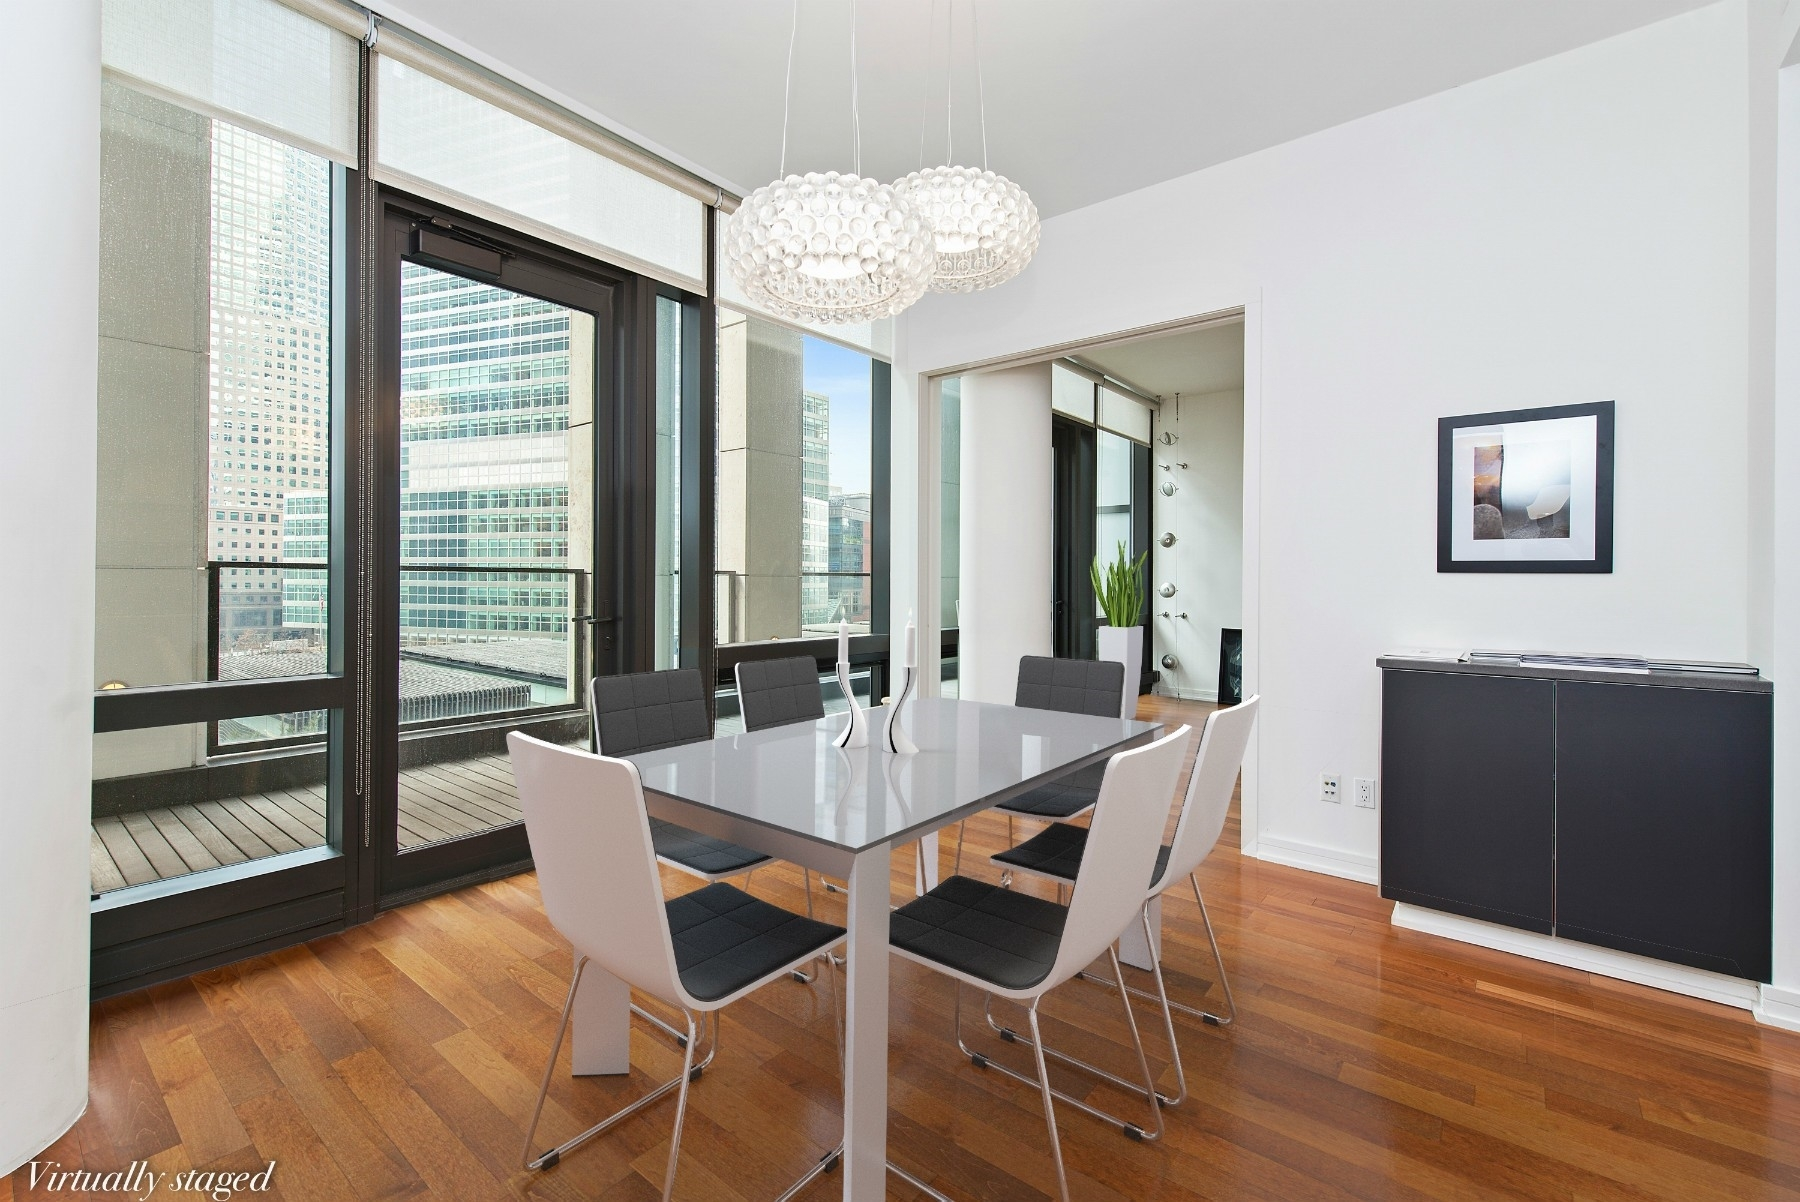 2. Condominiums for Sale at 101 Warren St, 11H TriBeCa, New York, NY 10007